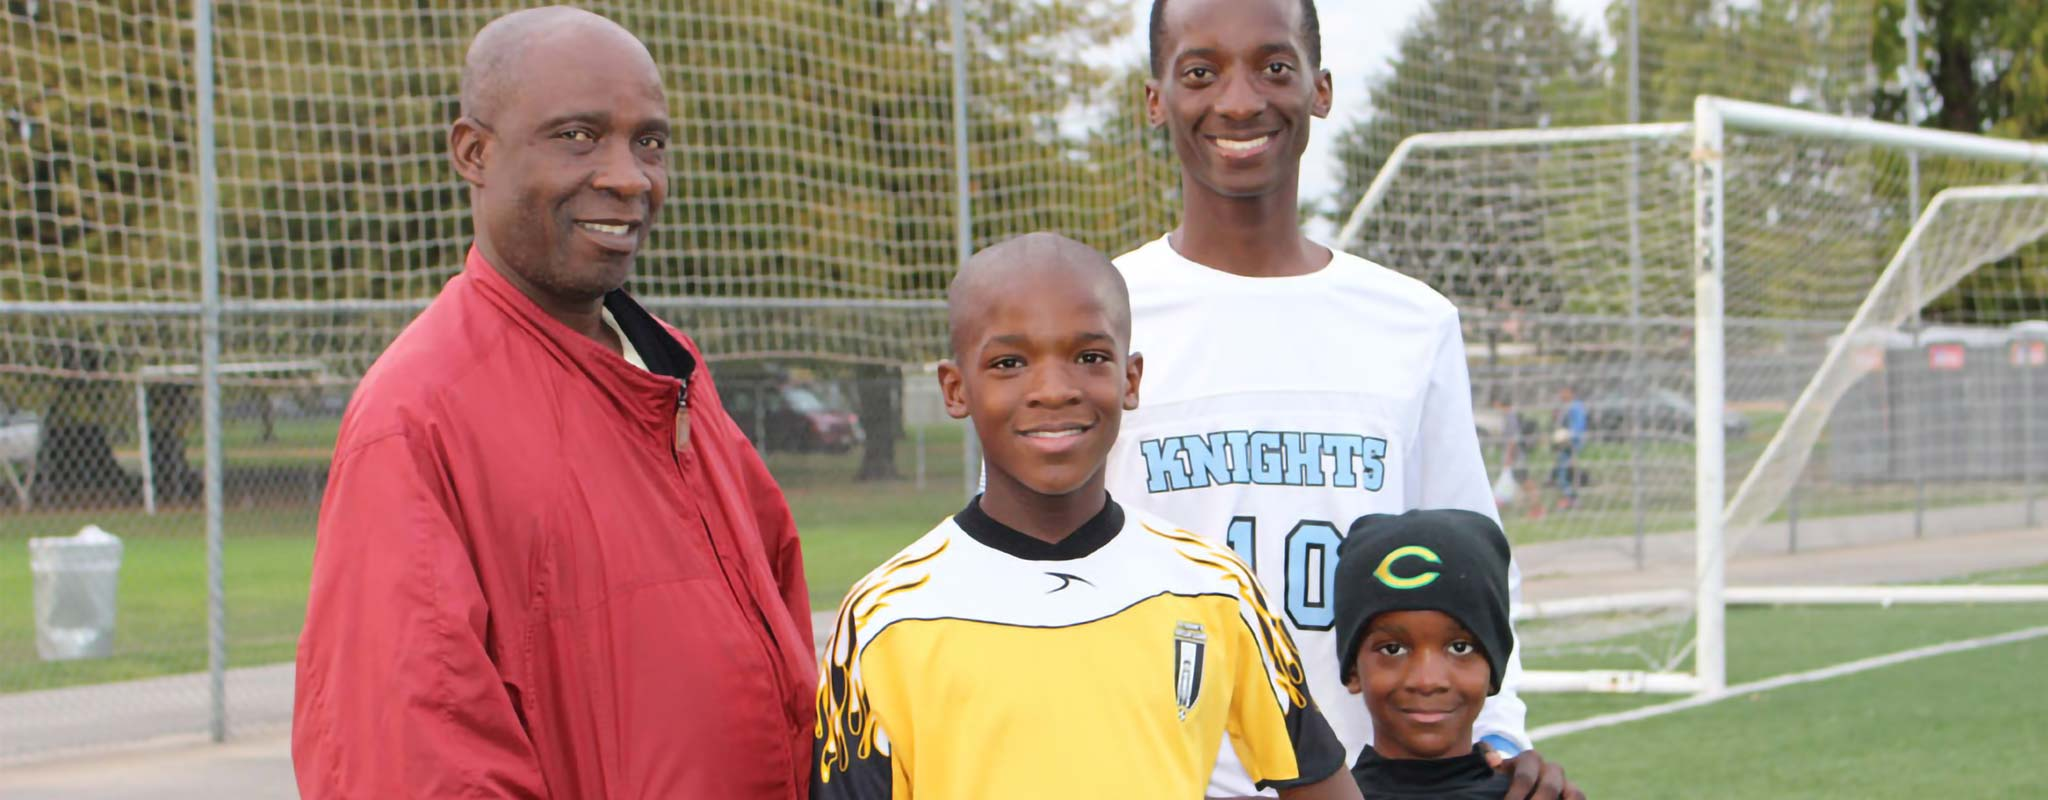 Felix Songolo of the varsity boys' soccer team at De La Salle North Catholic High School with some family members.